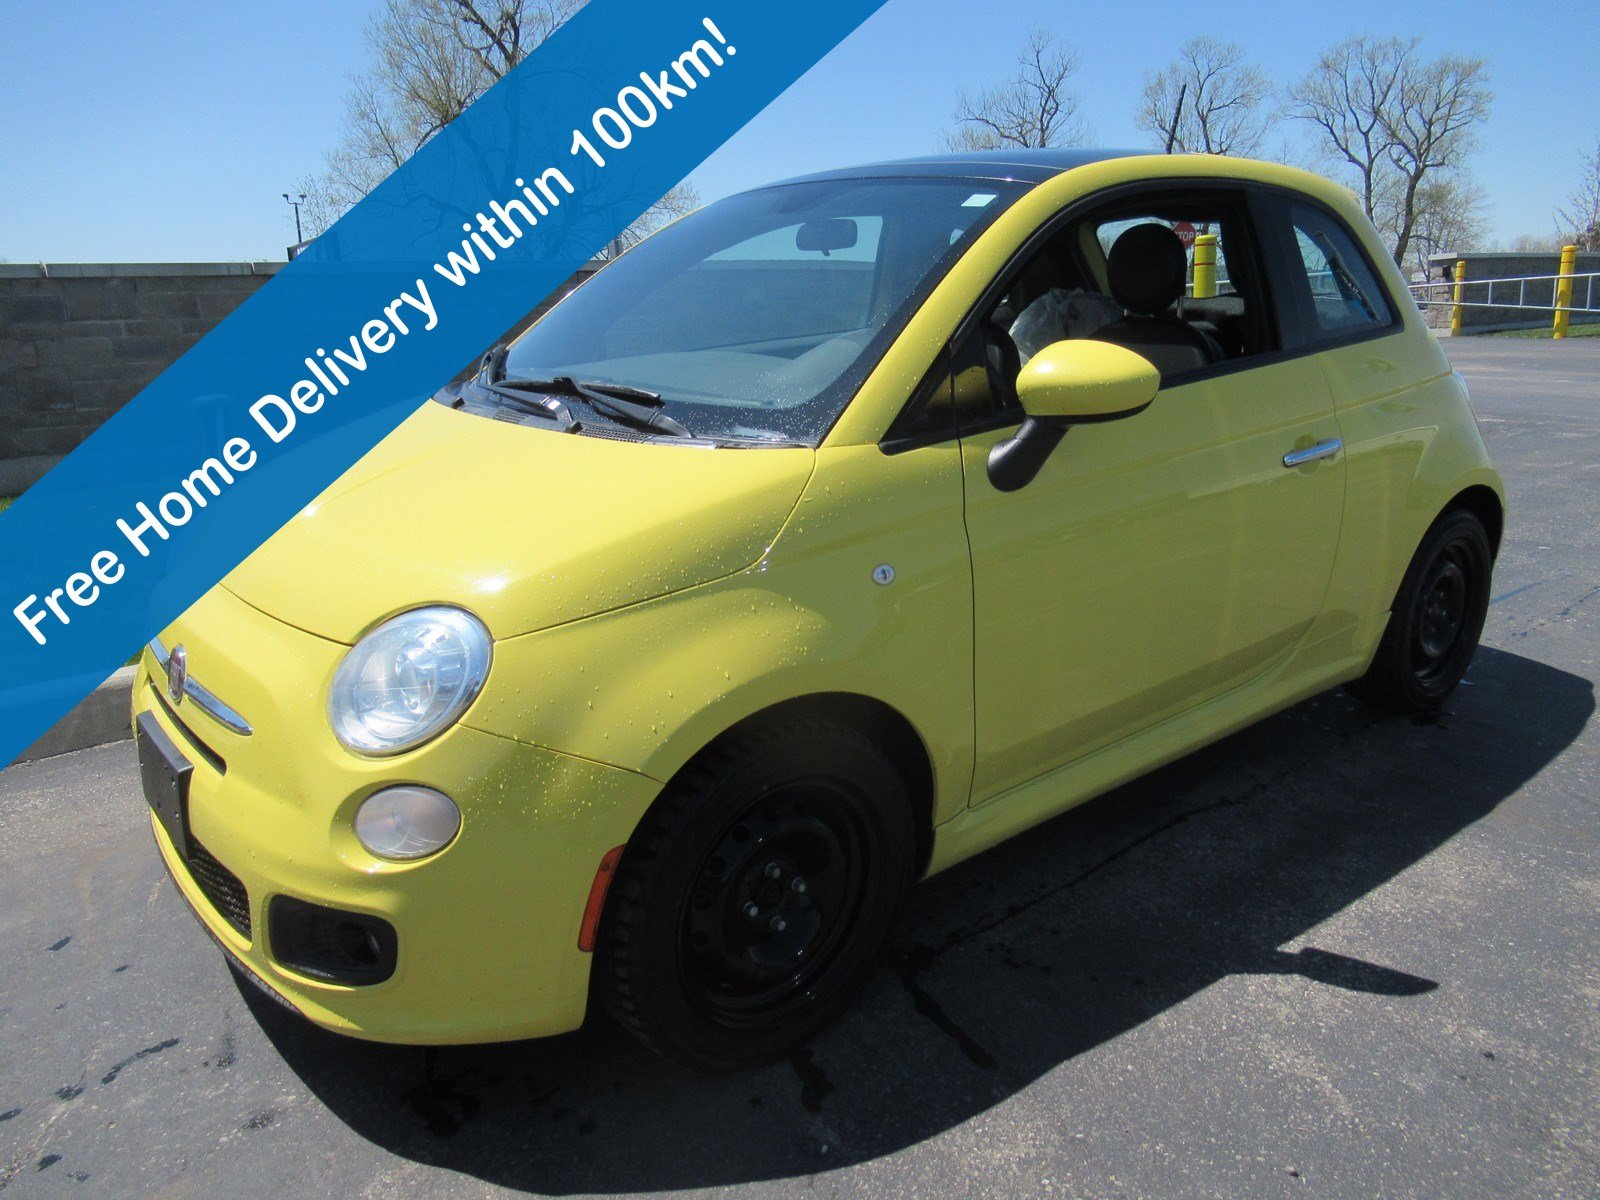 Certified Pre-Owned 2014 FIAT 500 Sport Hatchback, Sunroof, Leather Trim, Heated Seats, Power Package & More!